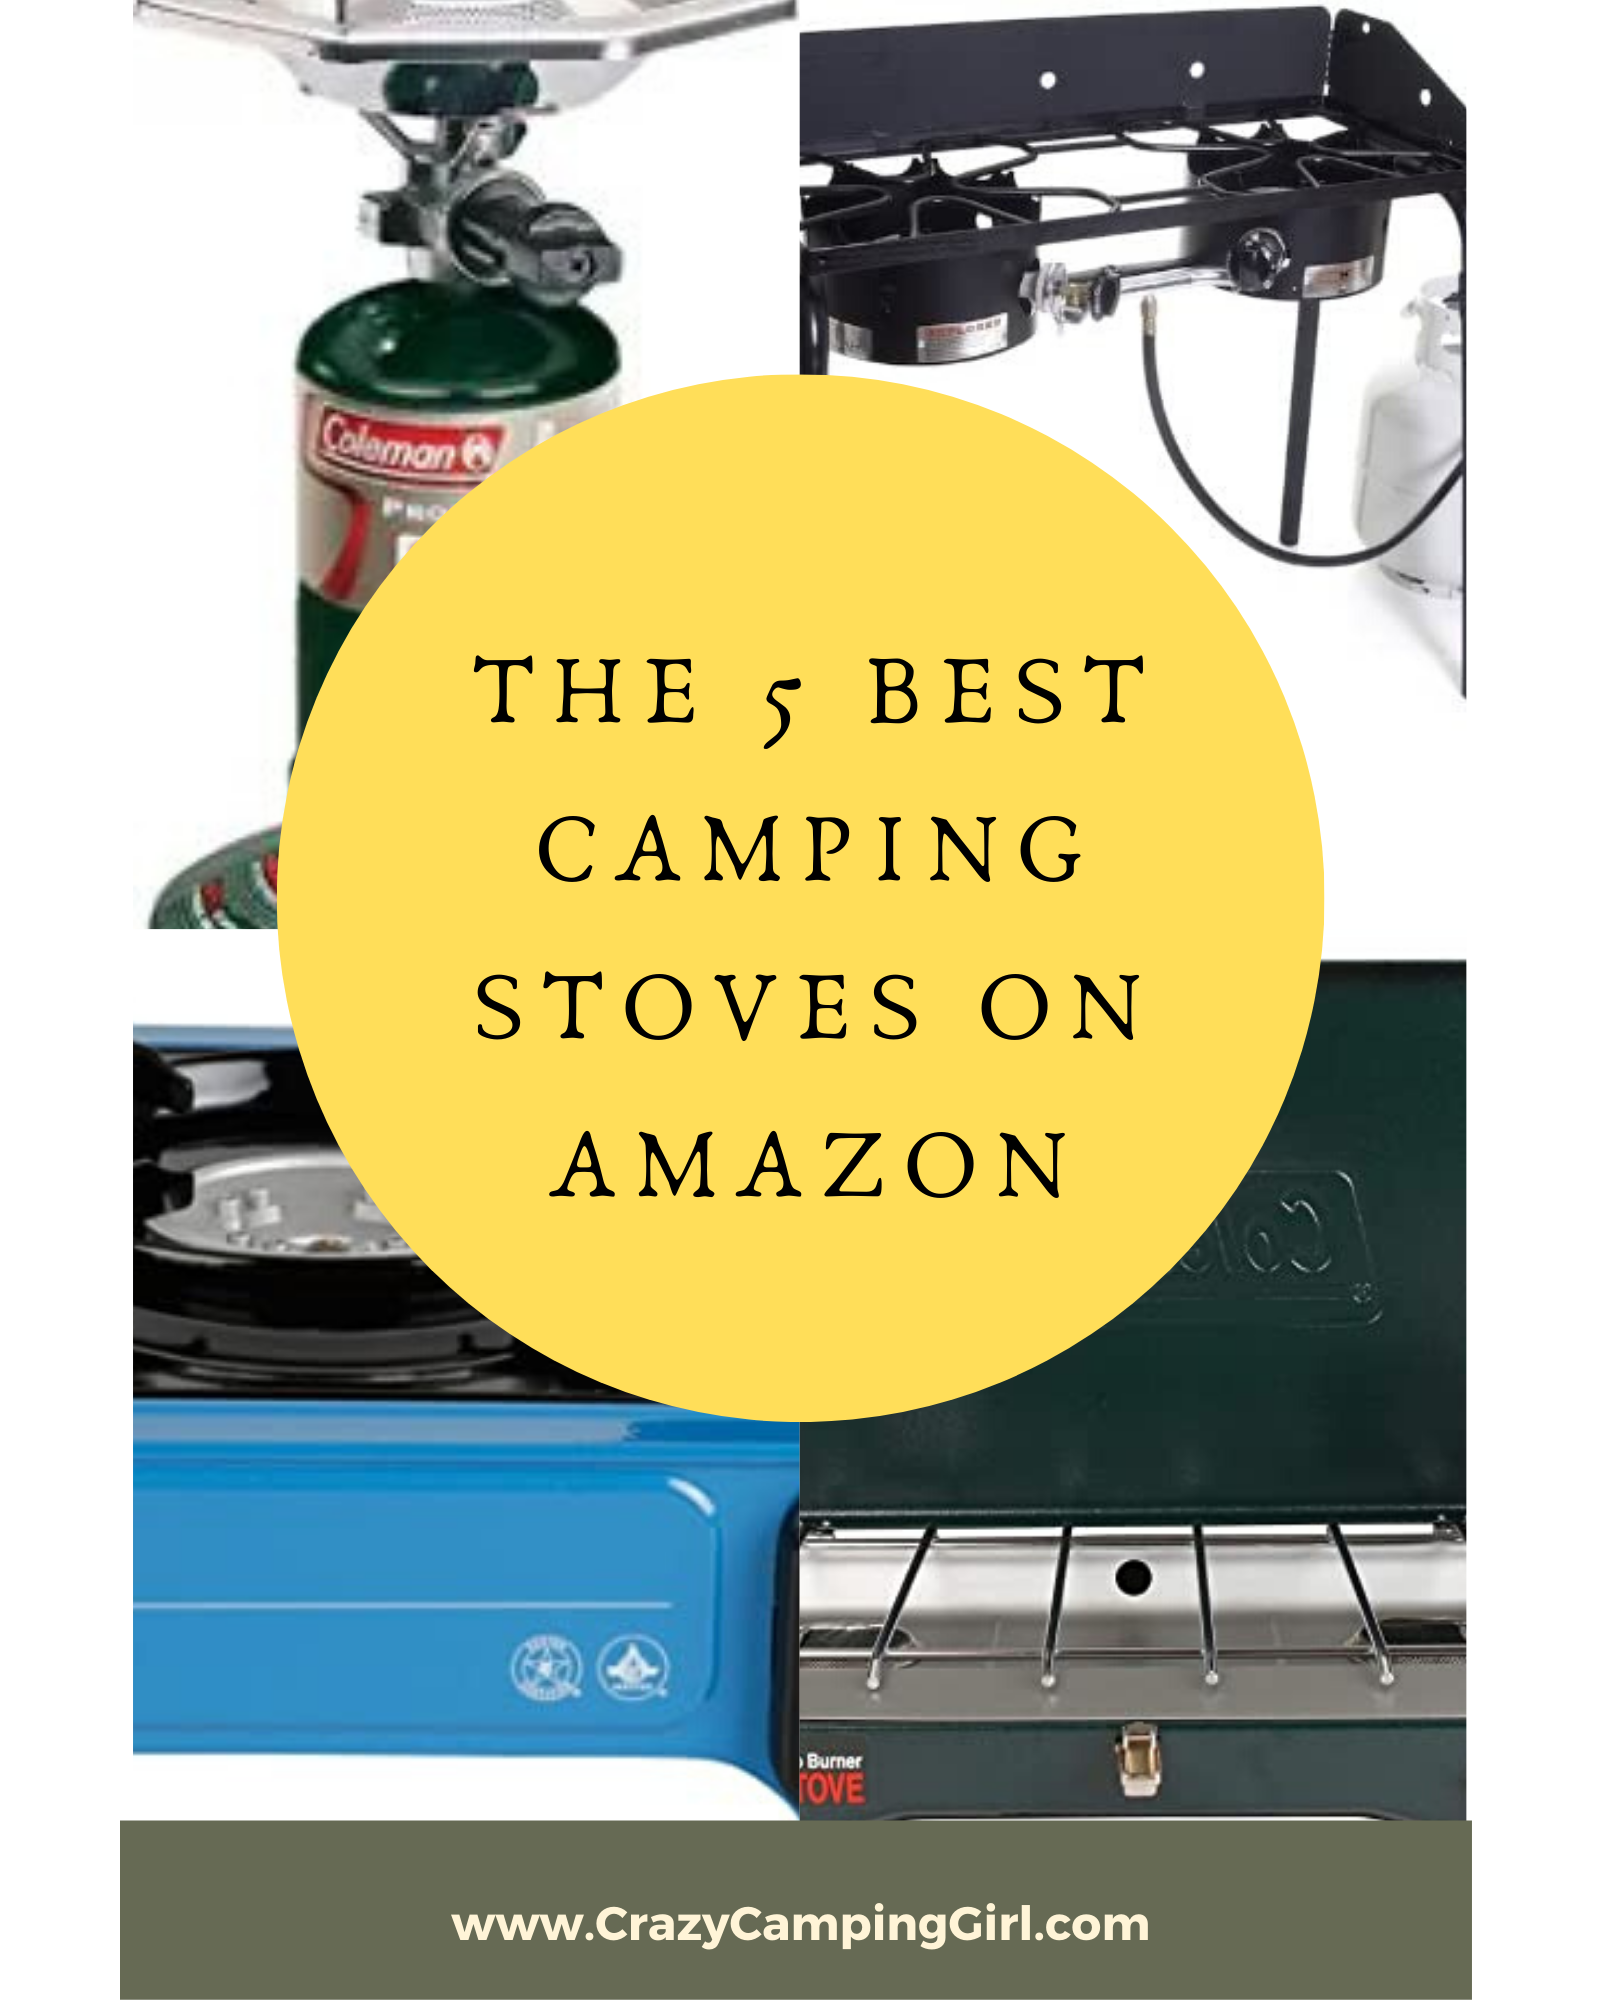 The 5 Best Single Camping Stoves on Amazon article image